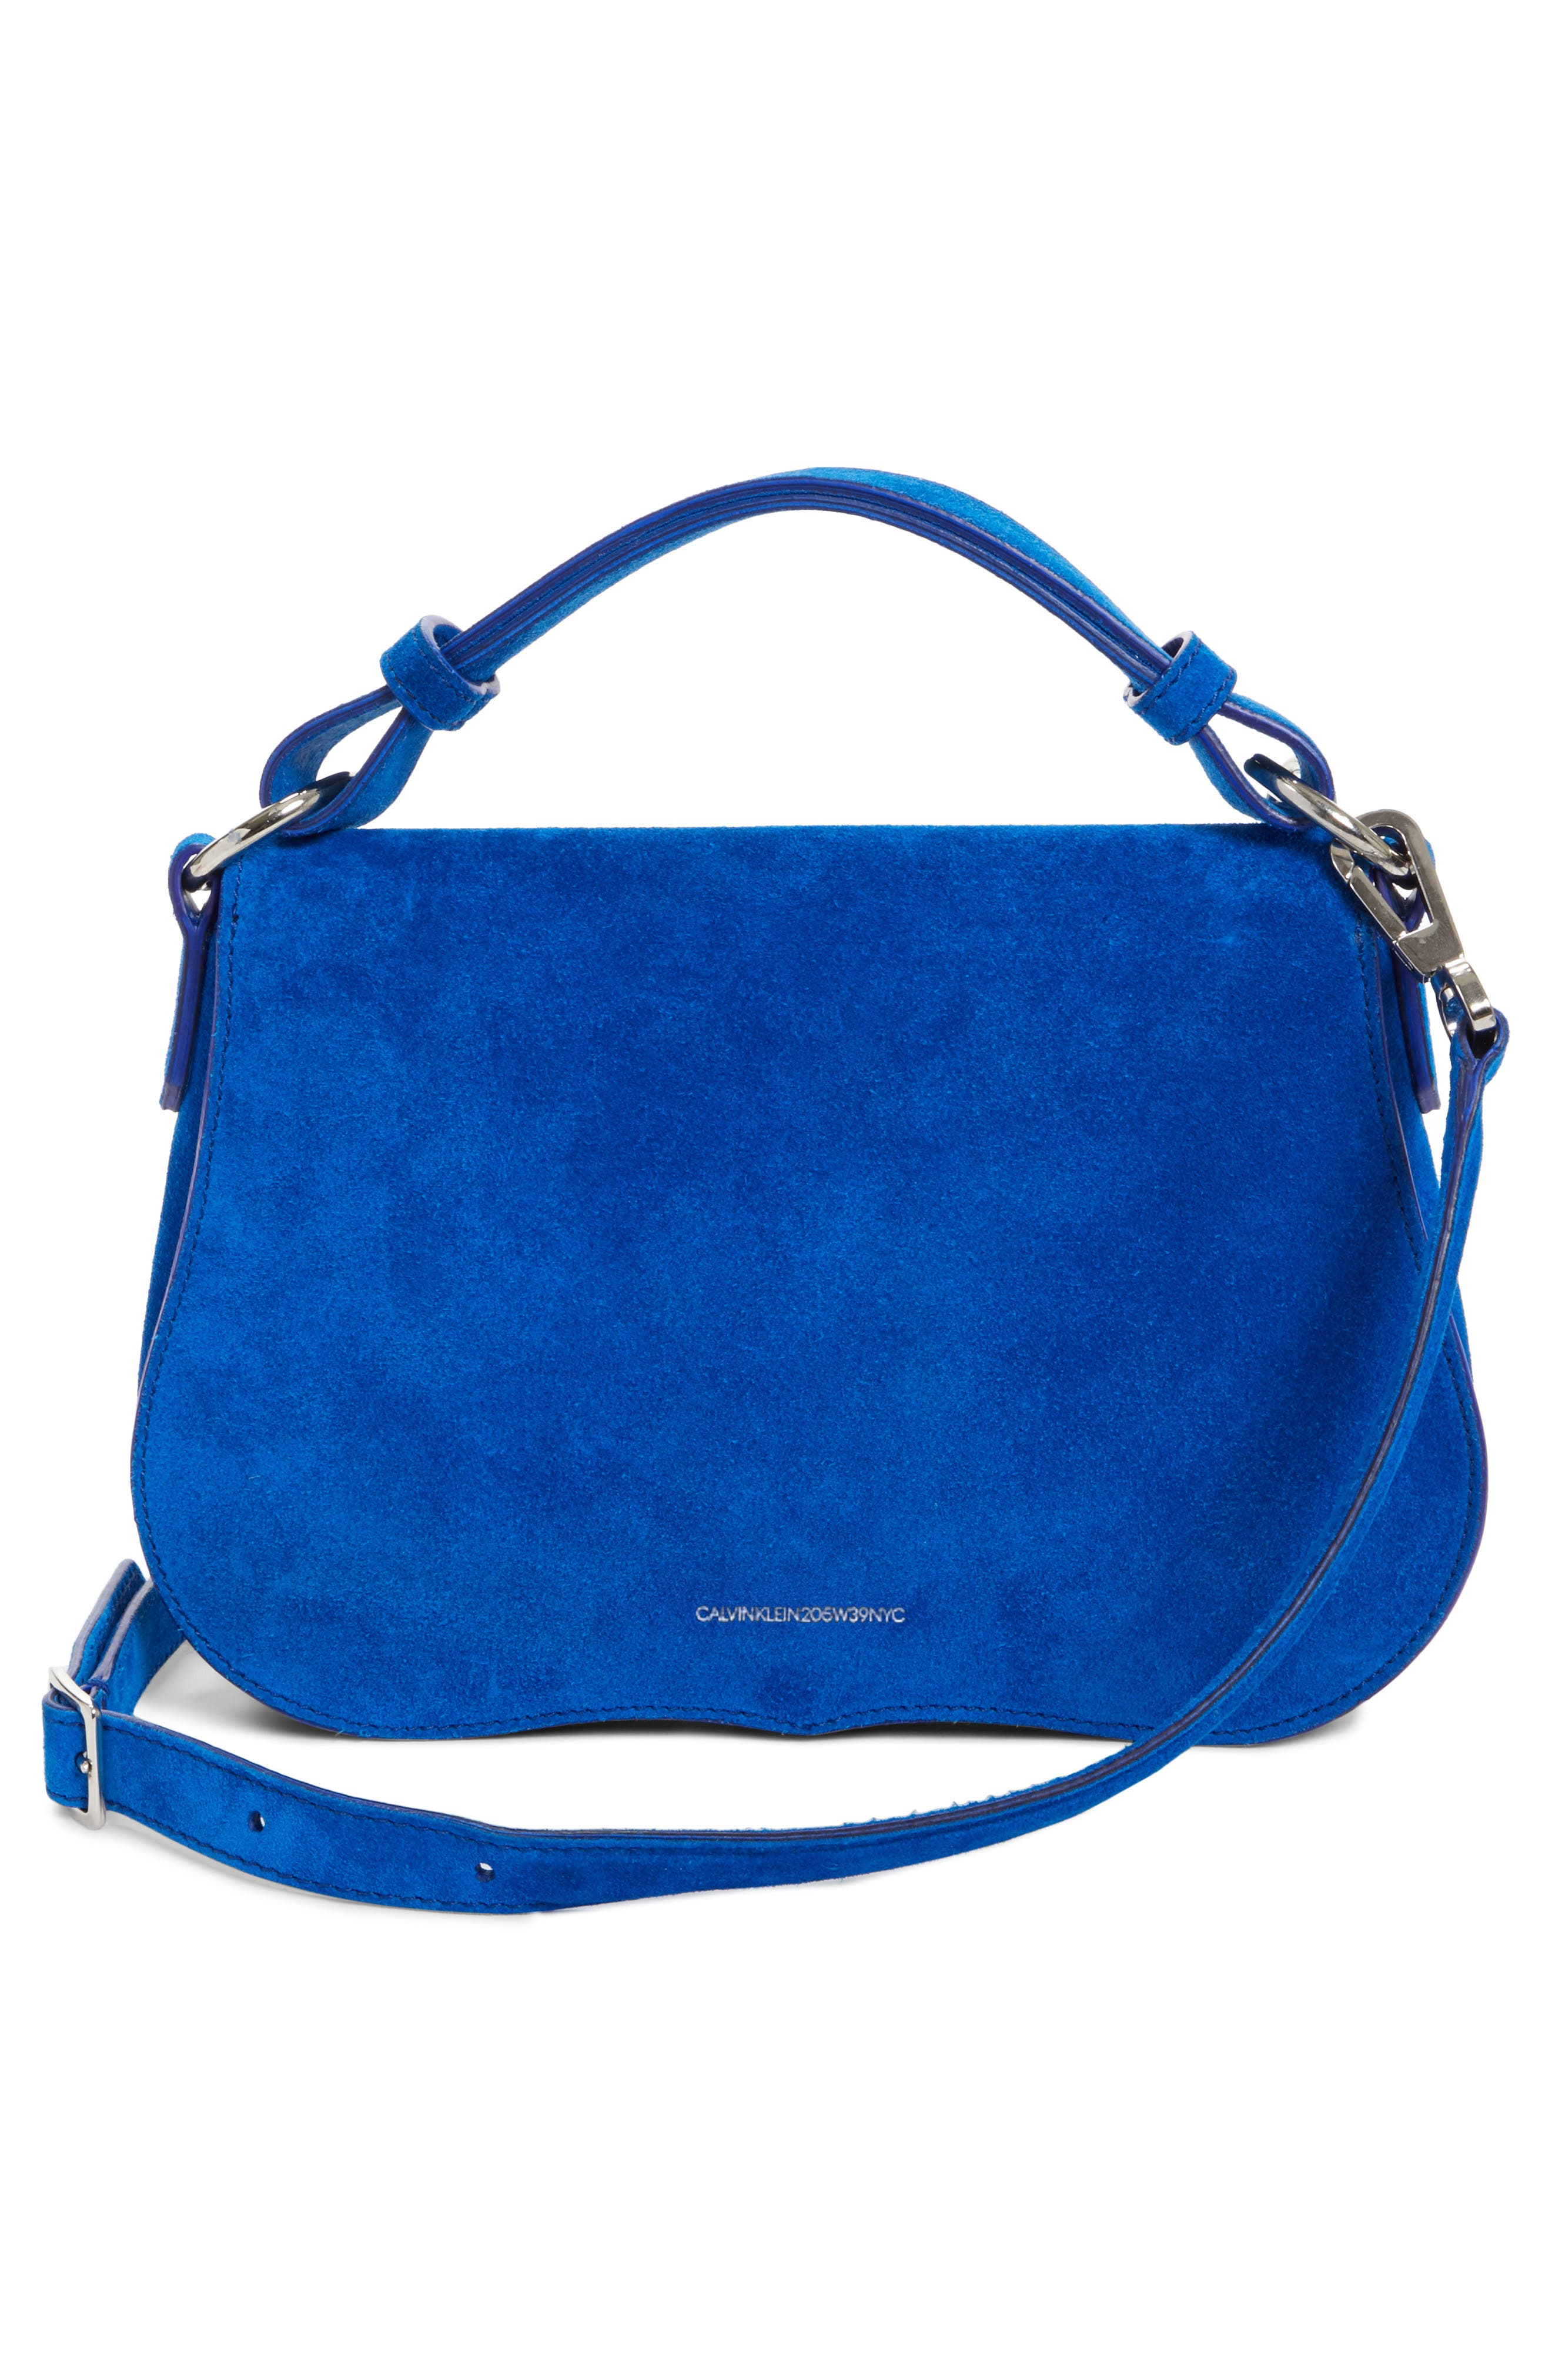 Small Suede Shoulder Bag,                             Alternate thumbnail 3, color,